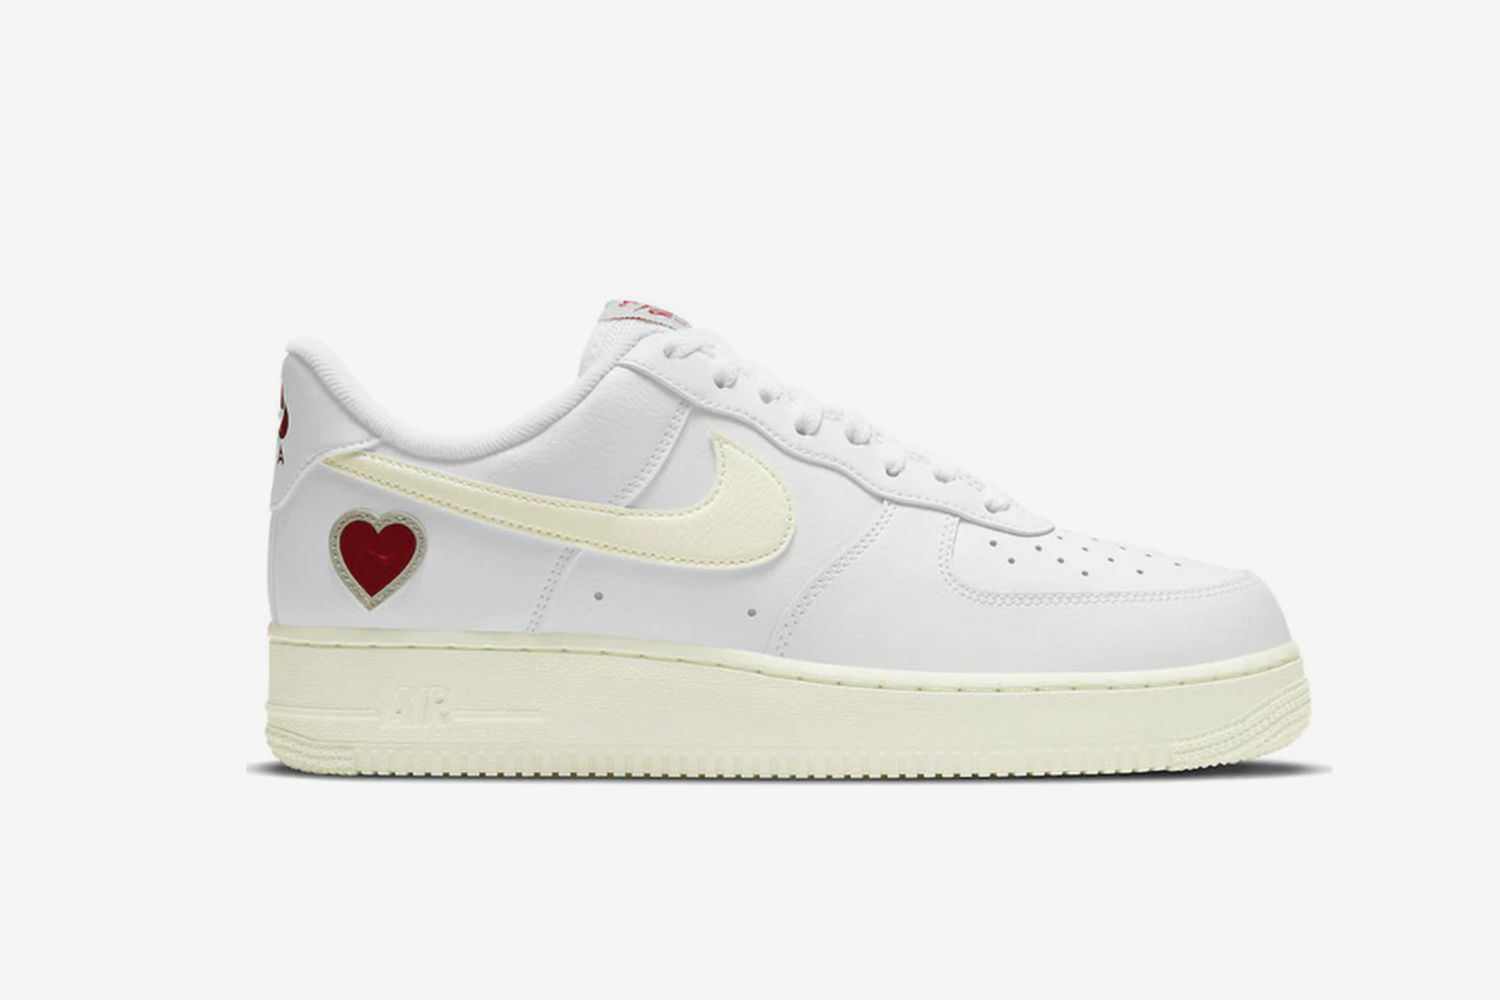 Air Force 1 Low Valentines Day 2021